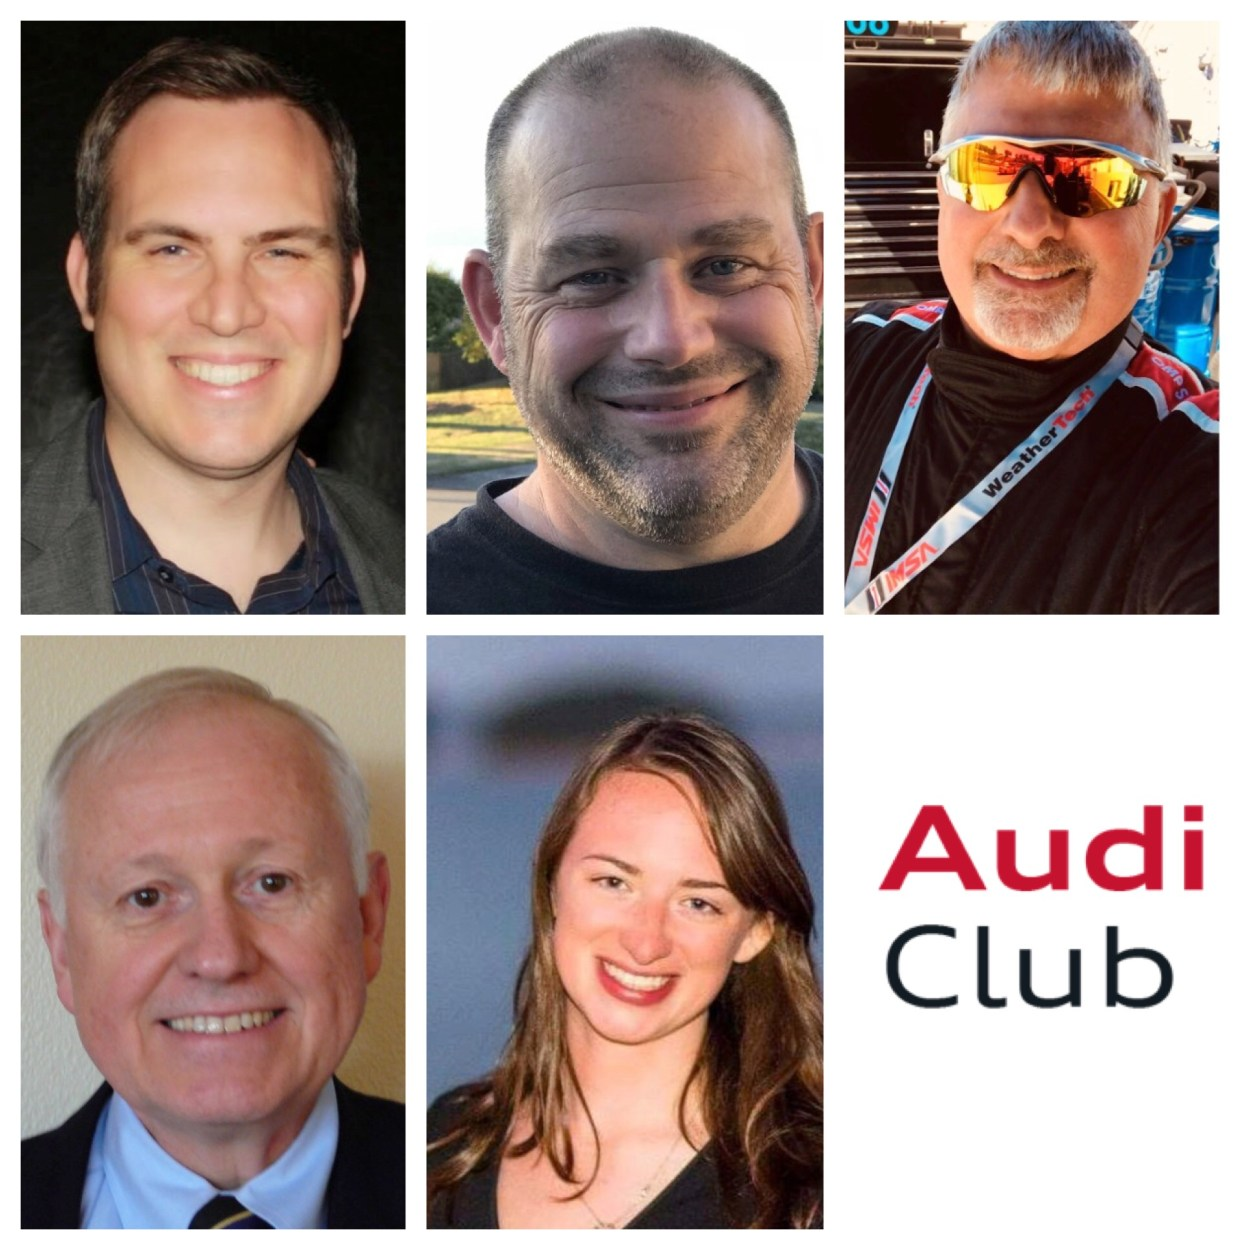 2018 Audi Club North America - National Board of Directors Election - Meet The Candidates!